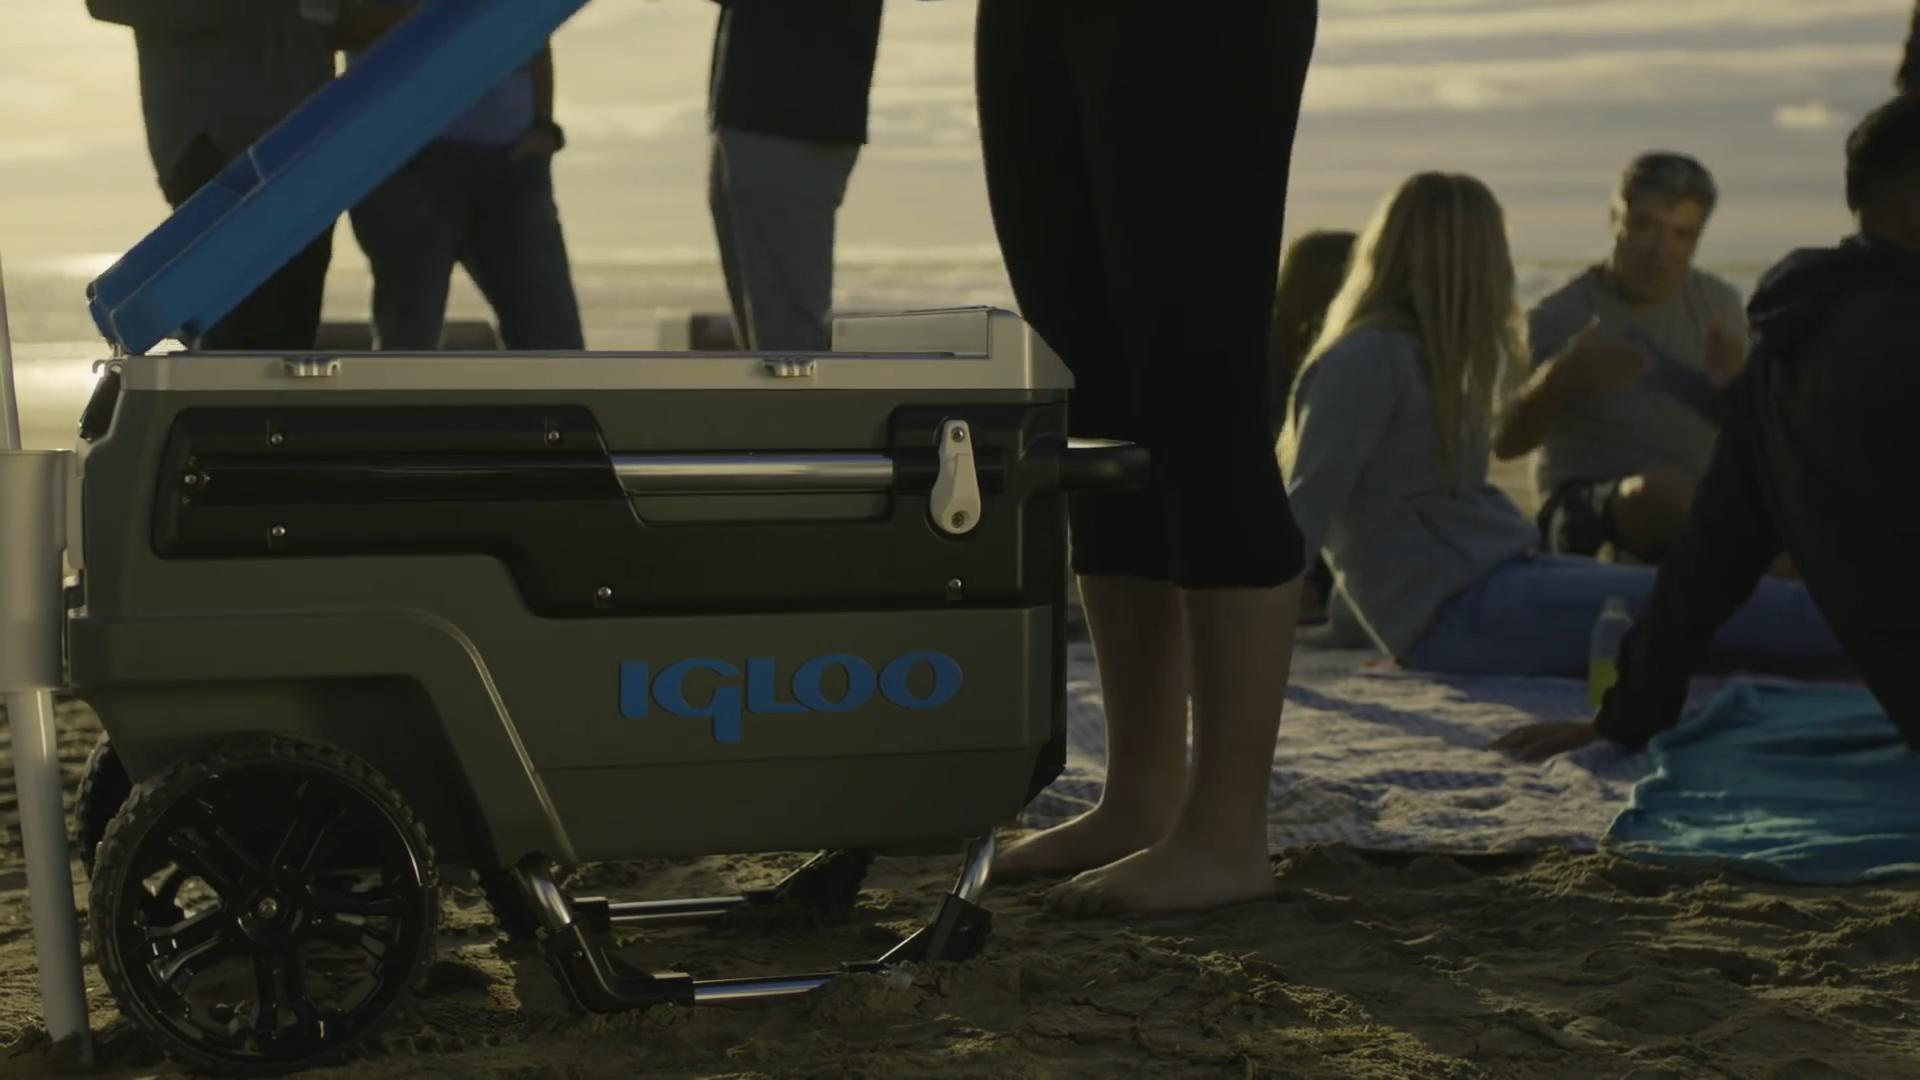 This might be the ultimate all-terrain cooler